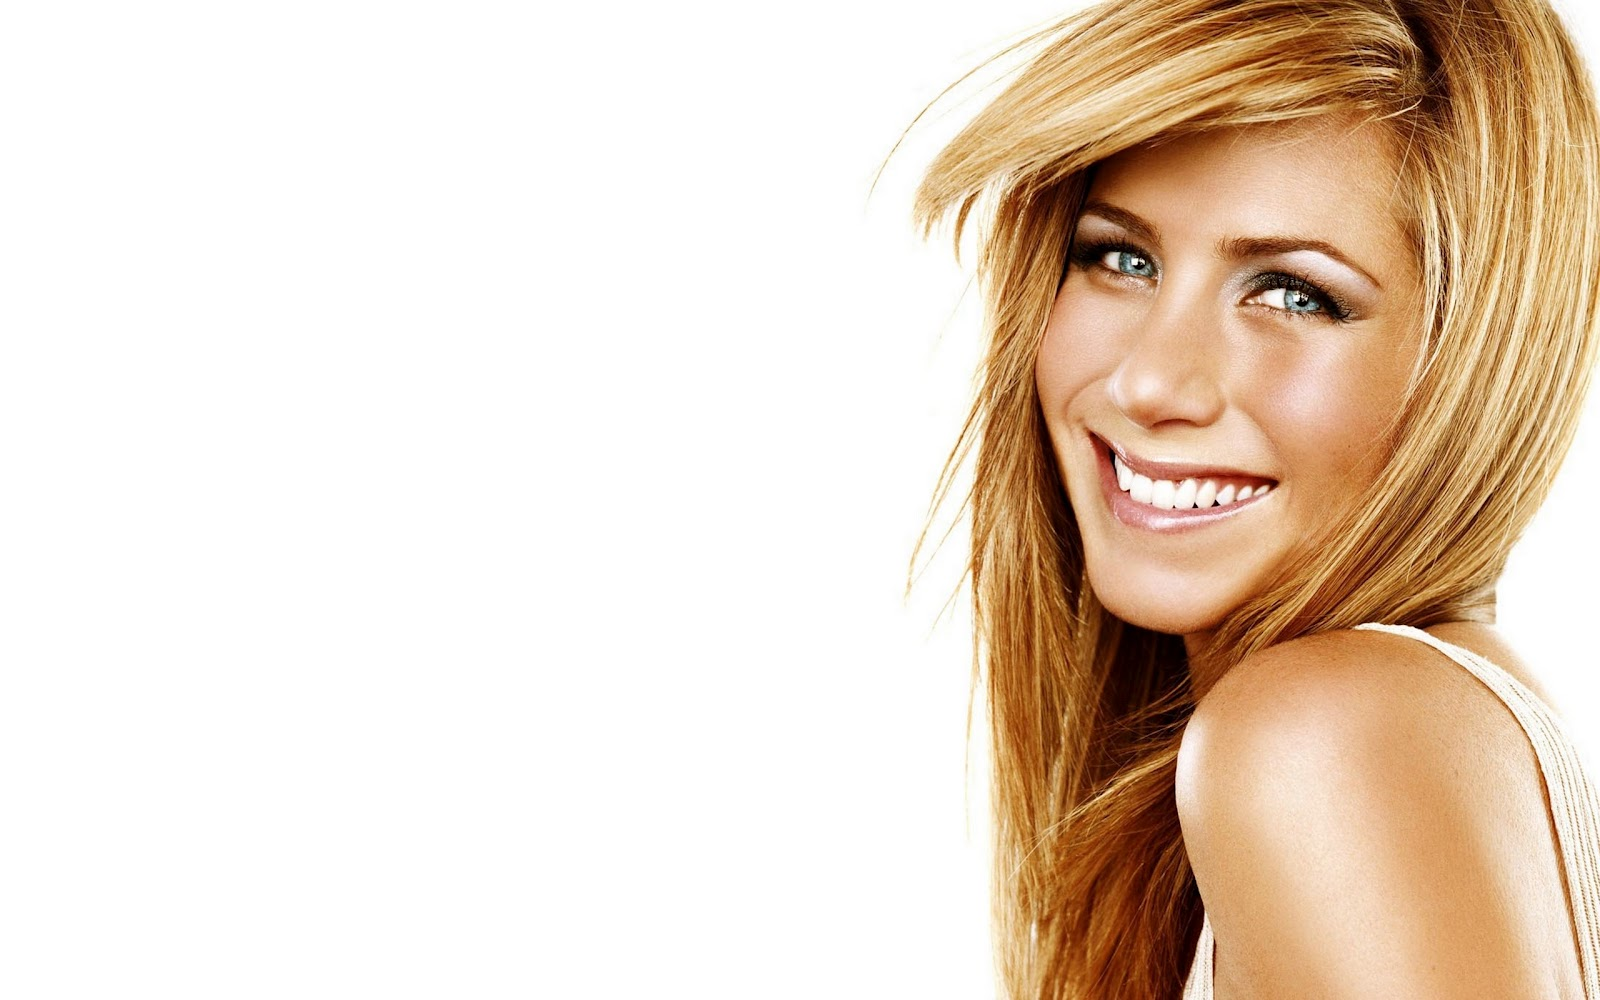 Jennifer Aniston: Fox Trending Now: Jennifer Aniston